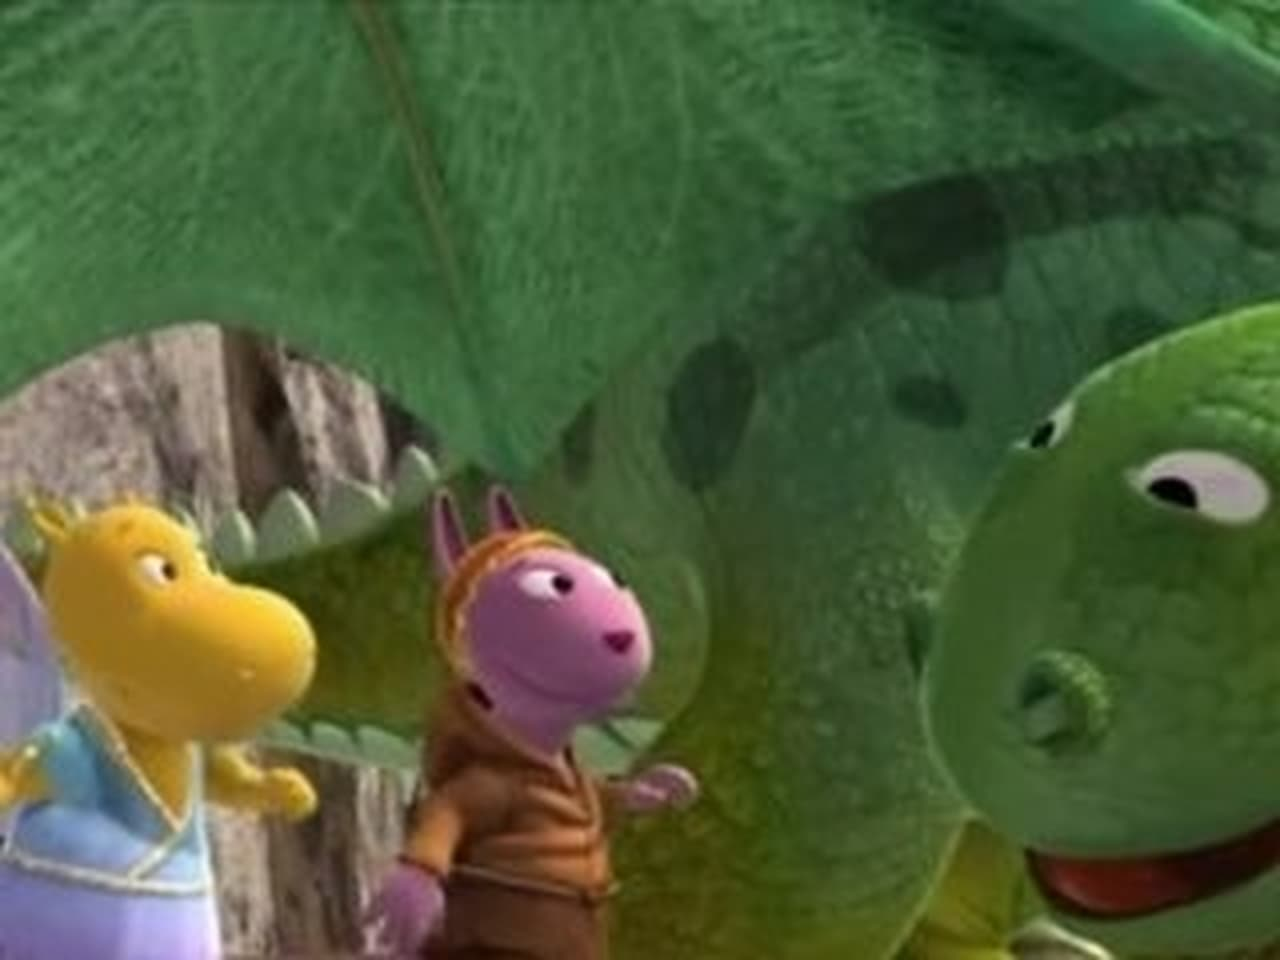 The Backyardigans Episode: The Tale of the NotSoNice Dragon